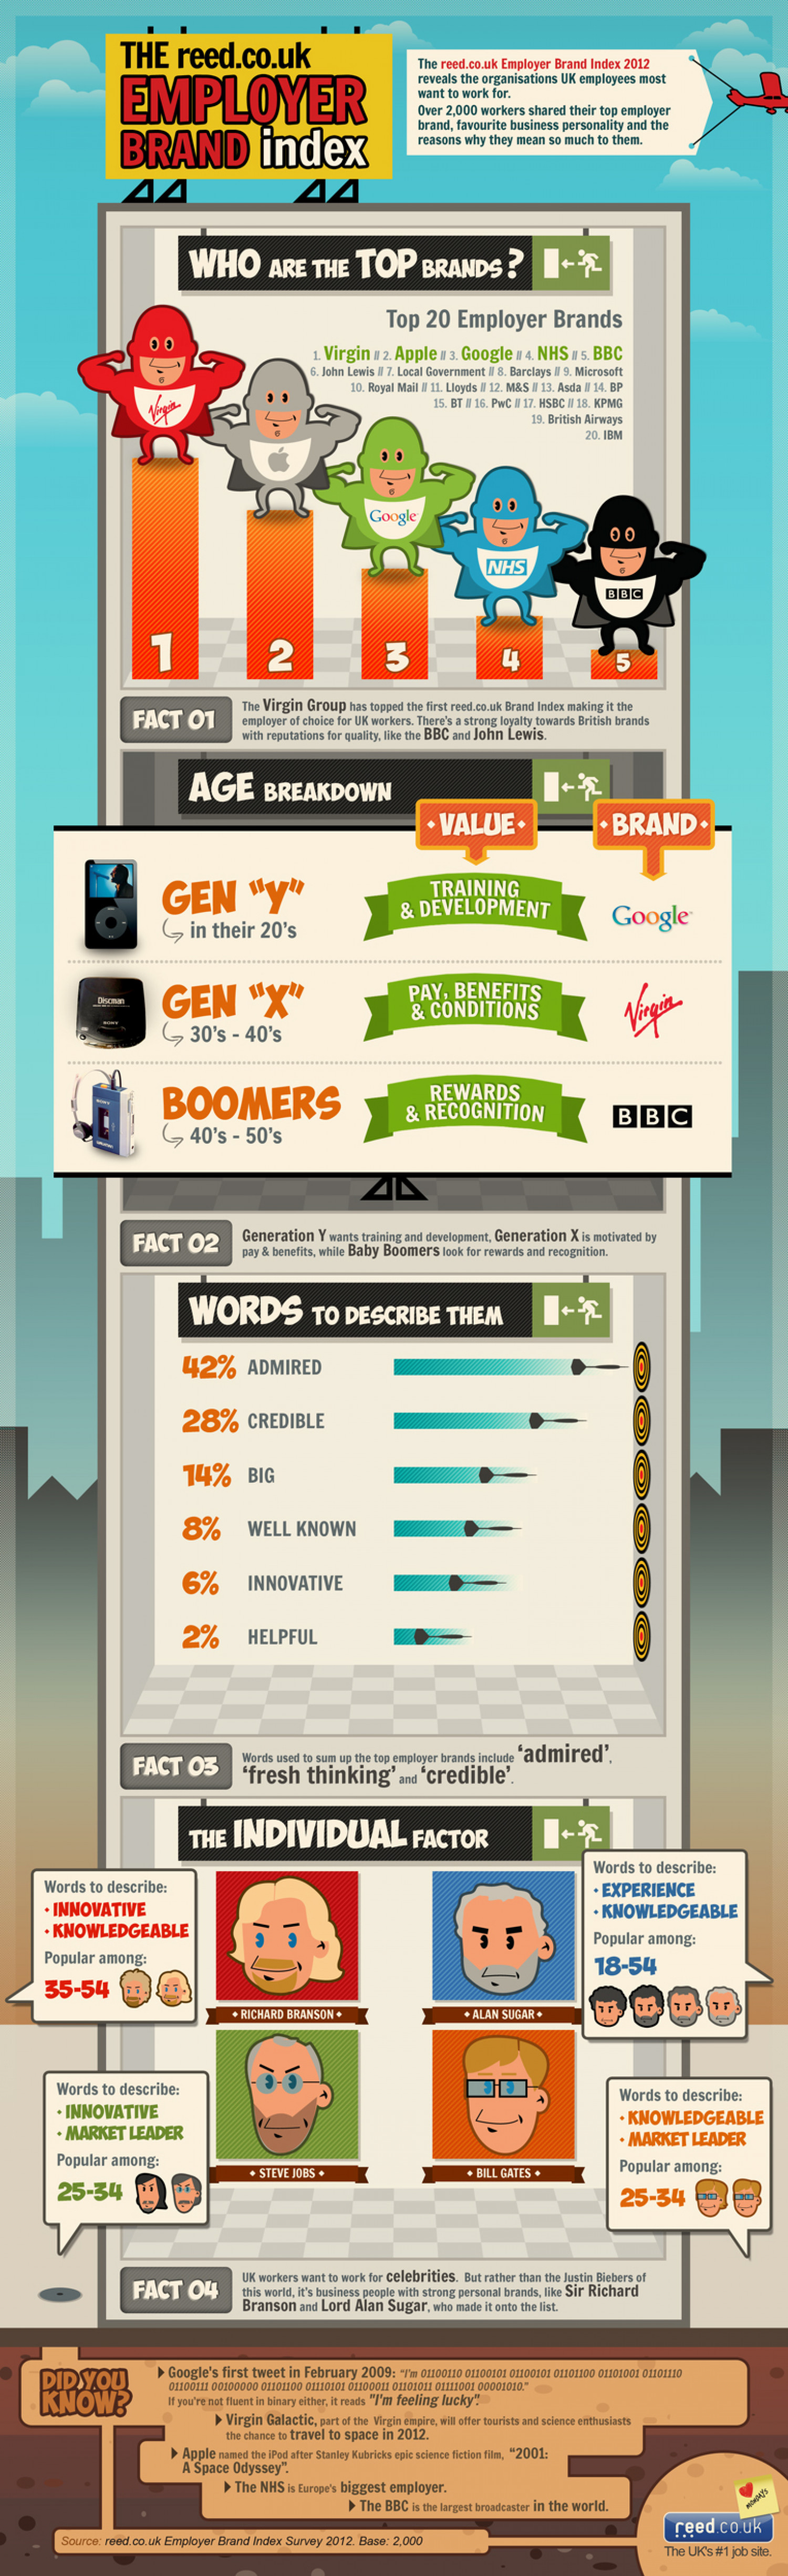 The reed.co.uk employer brand index Infographic